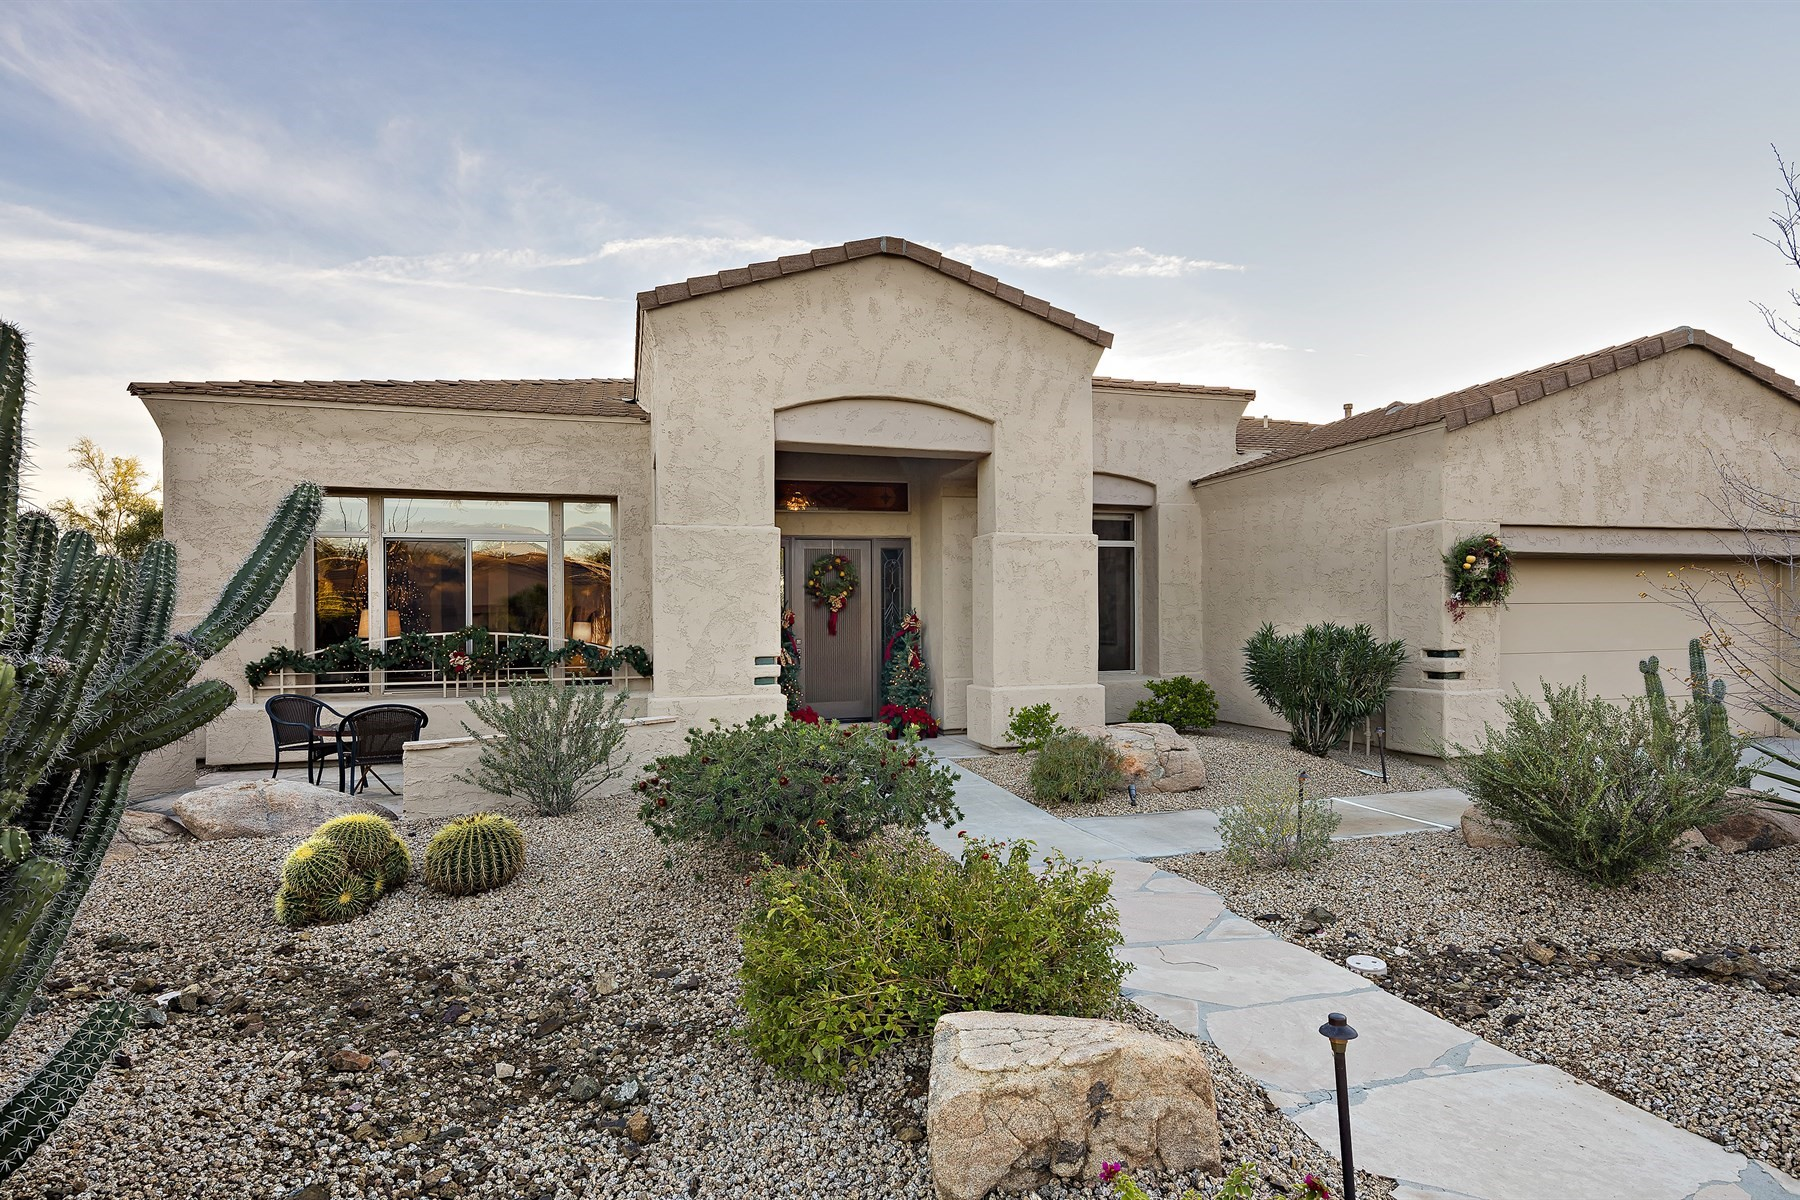 Single Family Home for Sale at Beautifully maintained home 7519 E Rose Garden Ln Scottsdale, Arizona, 85255 United States